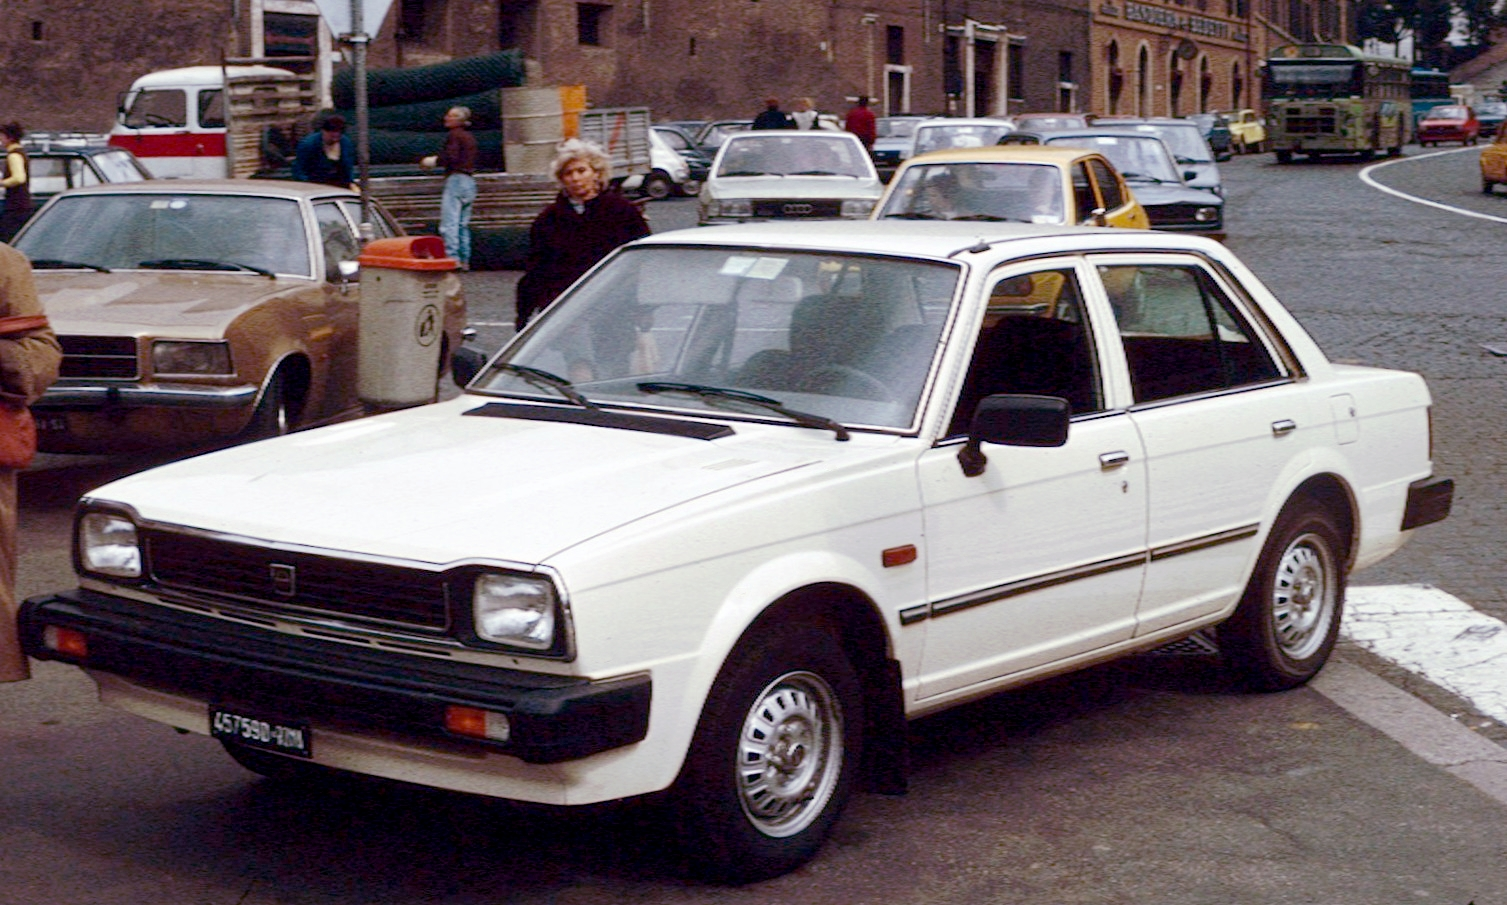 File:Triumph Acclaim in Rome.jpg - Wikimedia Commons